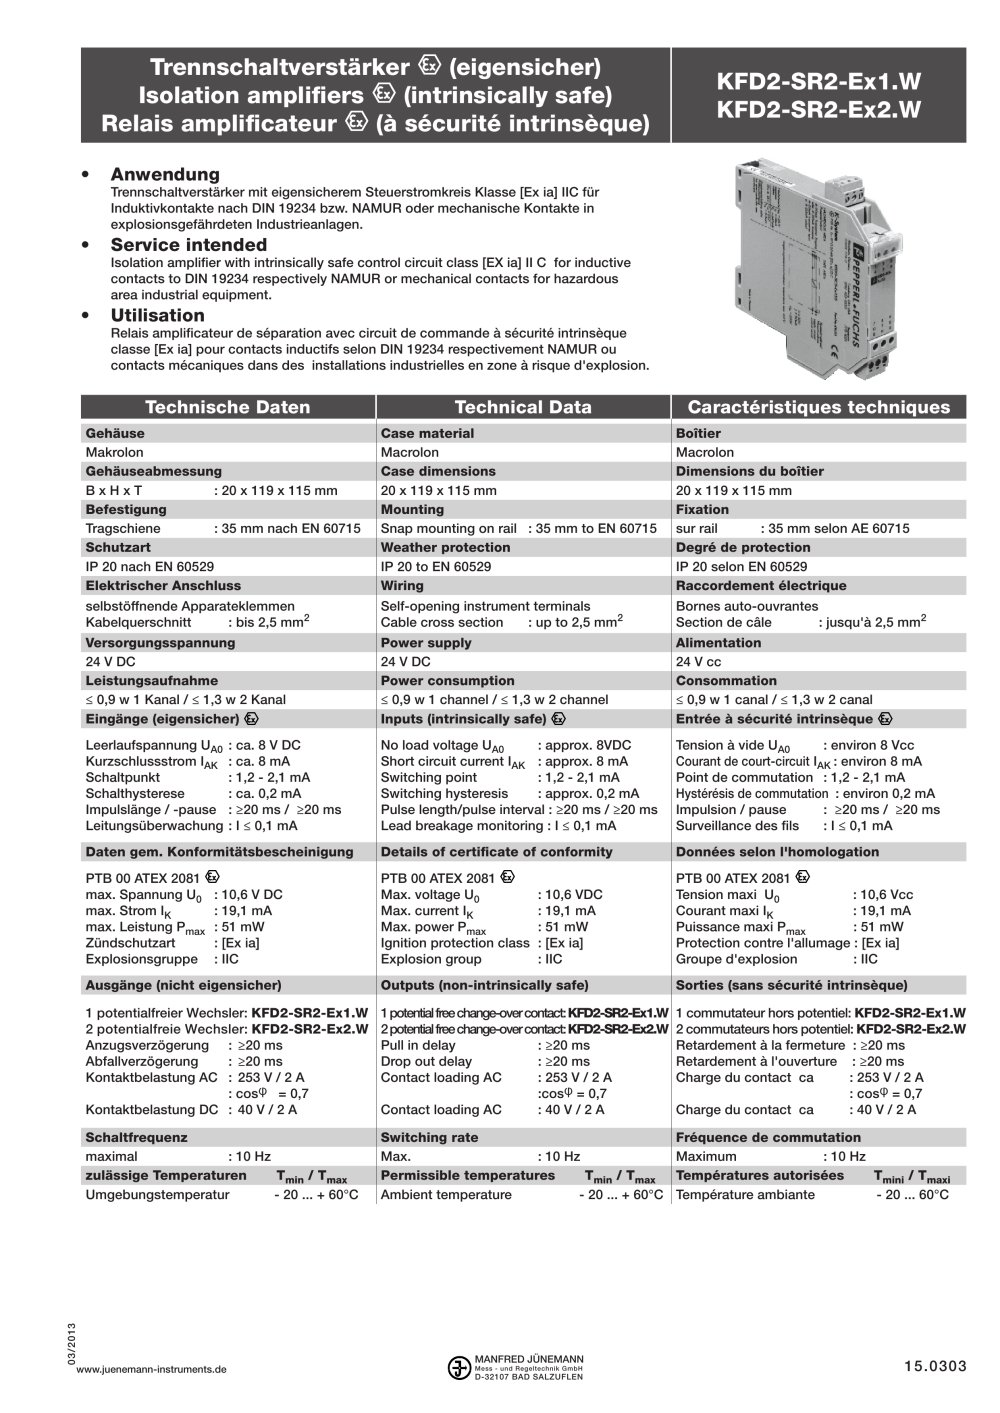 kfd2 sr2 ex1w kfd2 sr2 ex1w isolation amplifiers 573830_1b kfd2 sr2 ex1 w, kfd2 sr2 ex1 w isolation amplifiers manfred kfd2-sr2-ex1.w wiring diagram at gsmportal.co